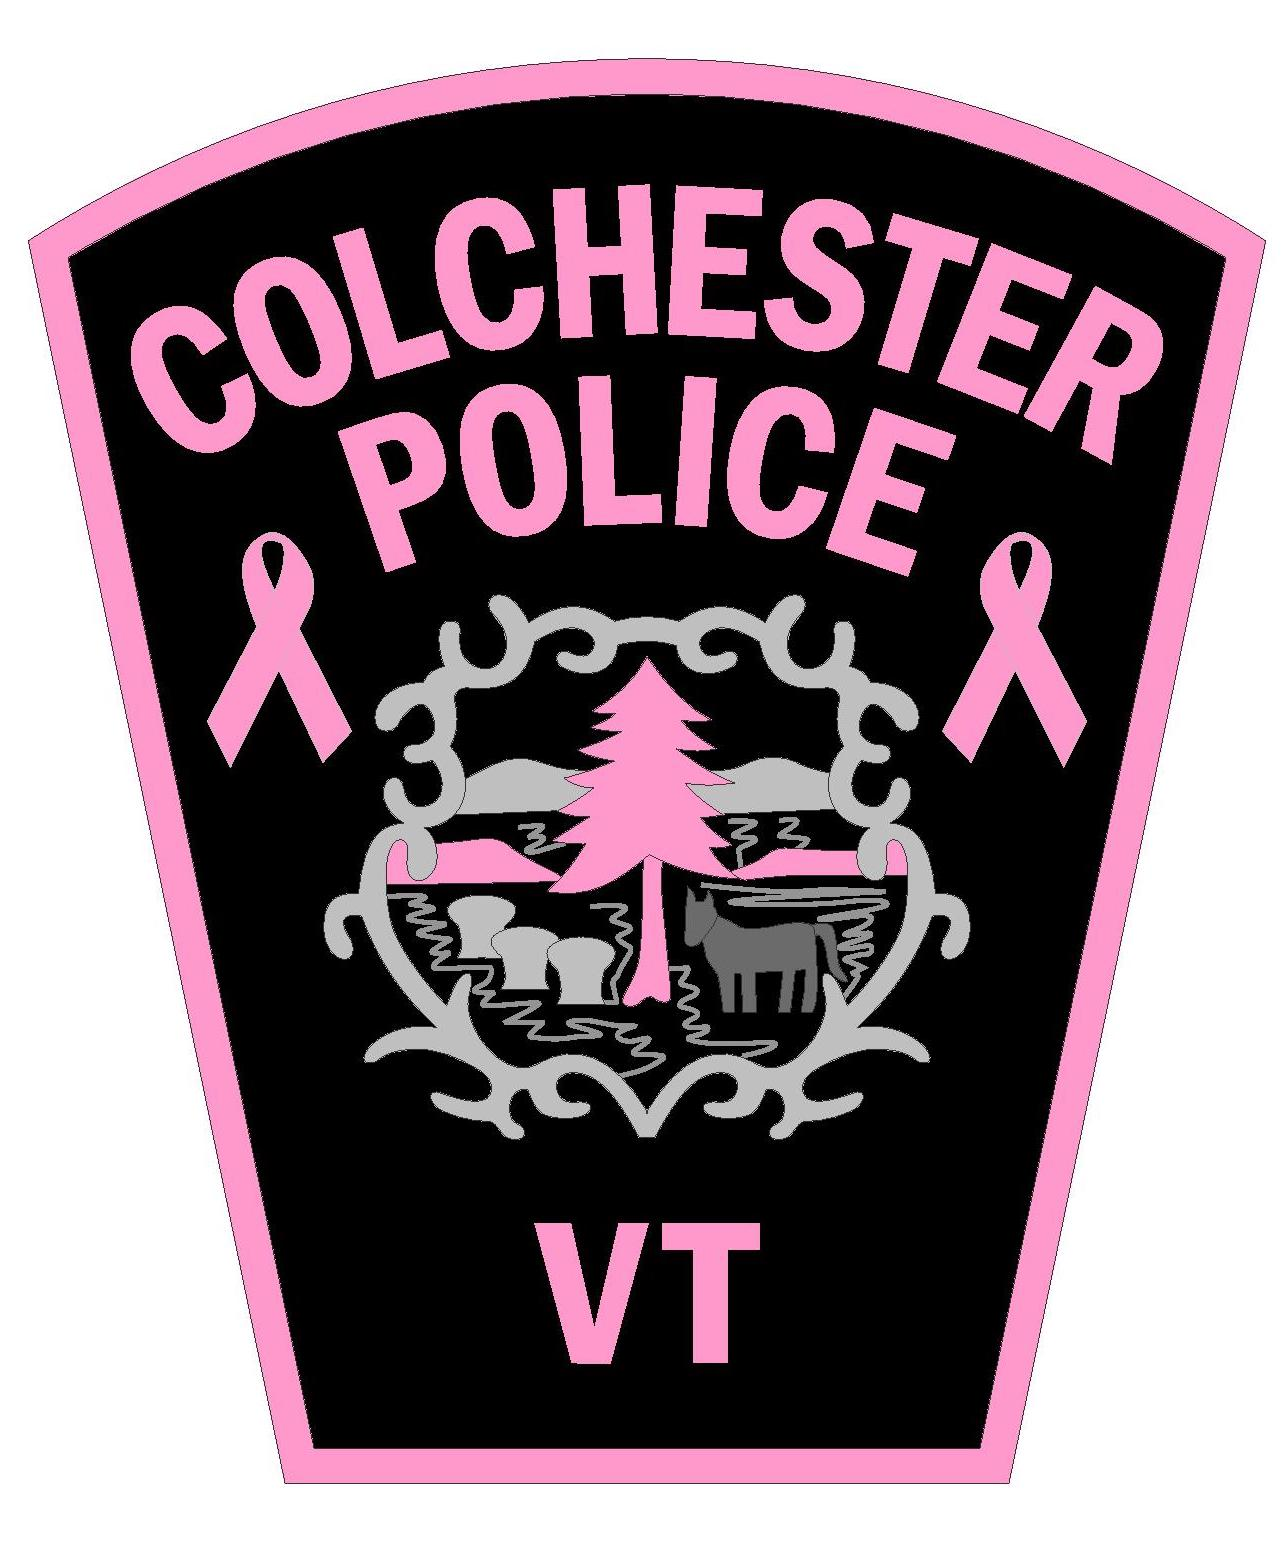 Colchester Police (VT) - Pink Patch-page-001.jpg